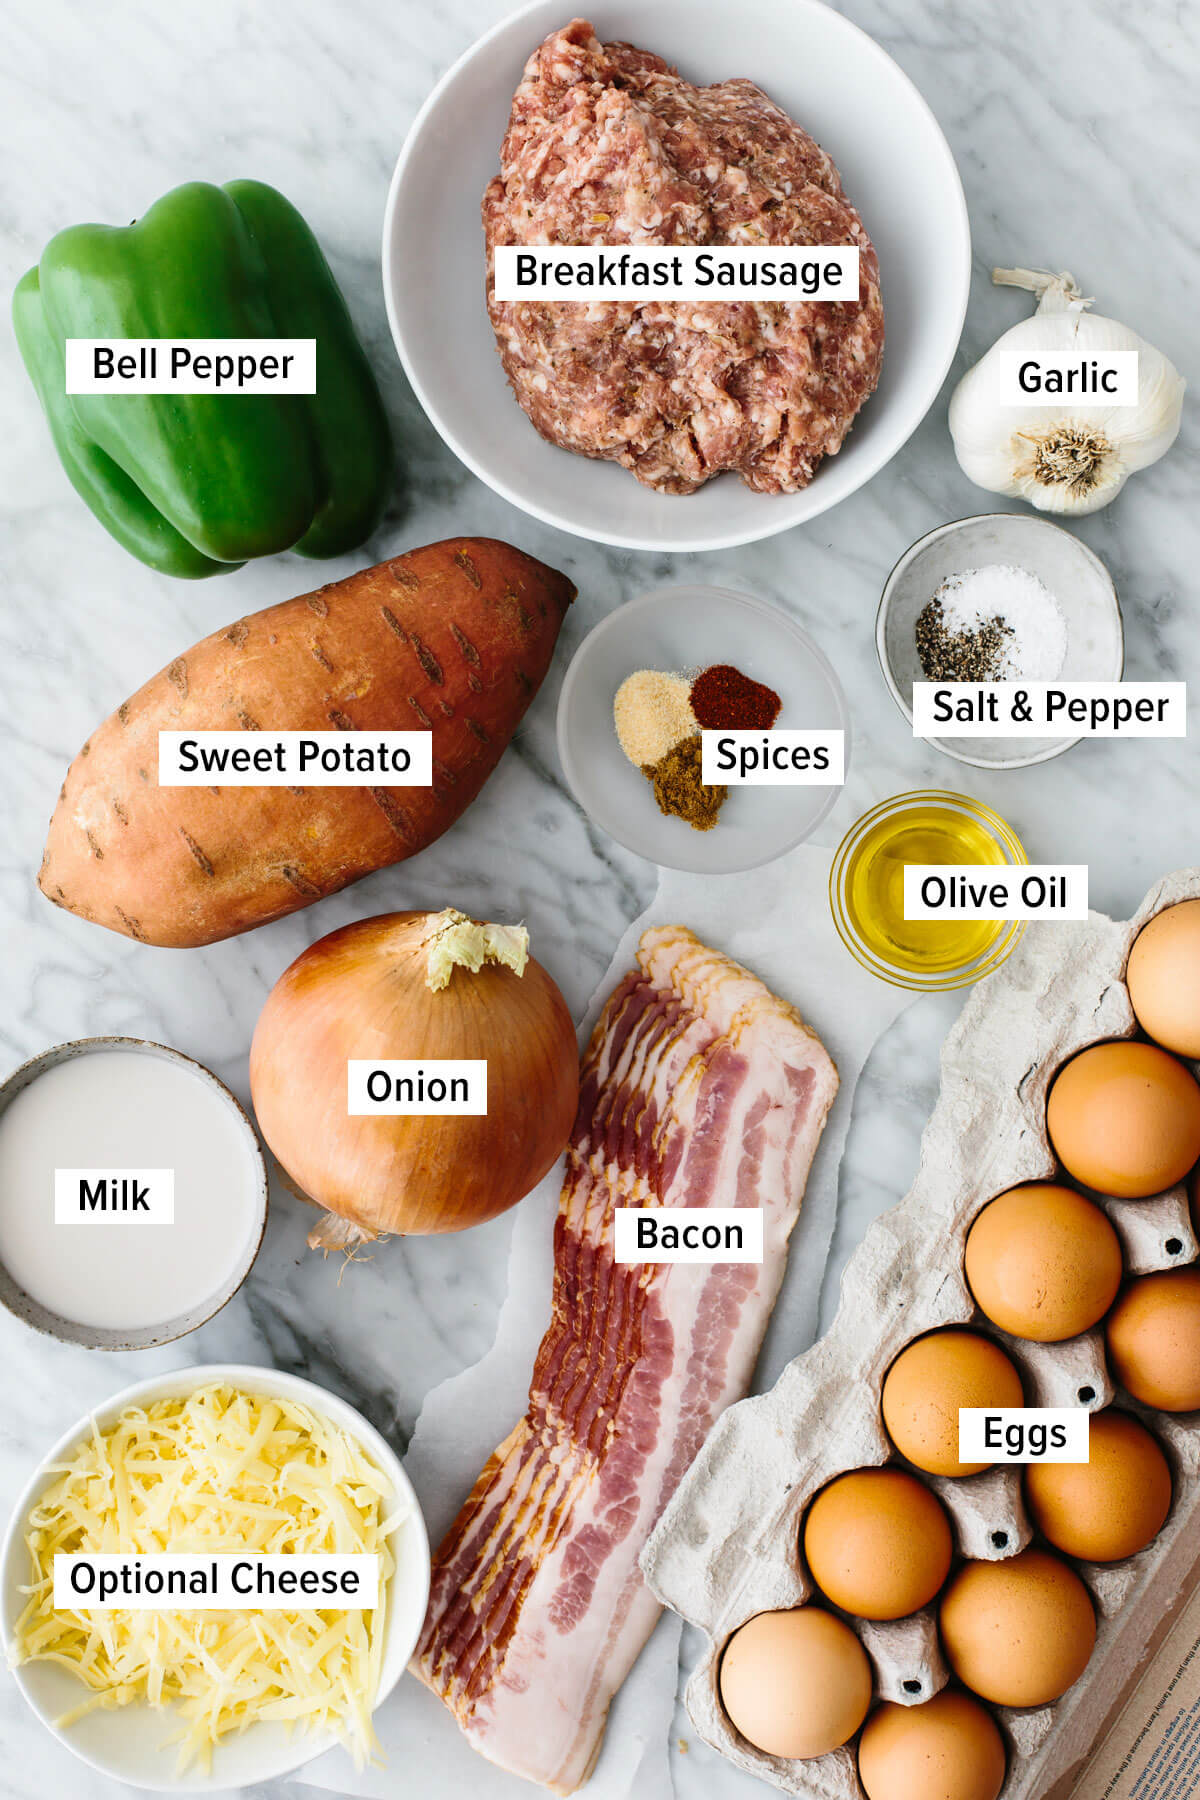 Ingredients for a breakfast casserole on a table.